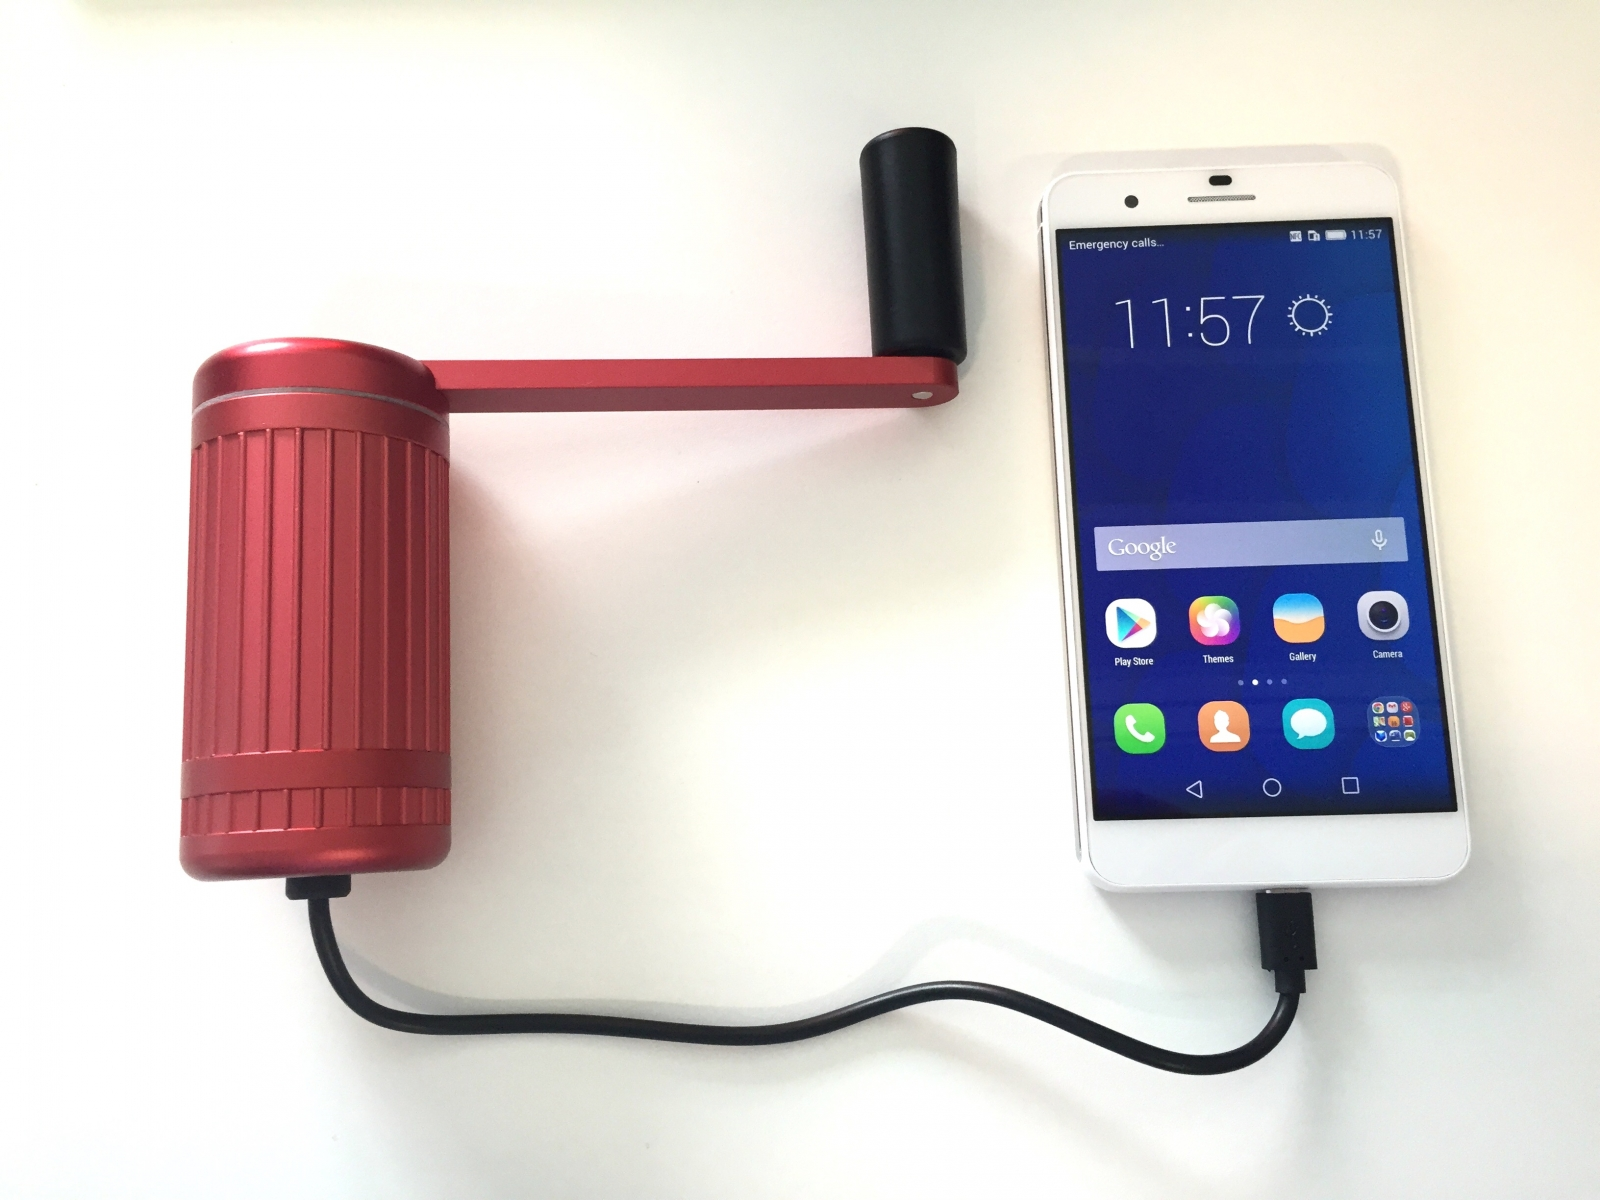 Crank Monkey The Wind Up Phone Charger To Climb A